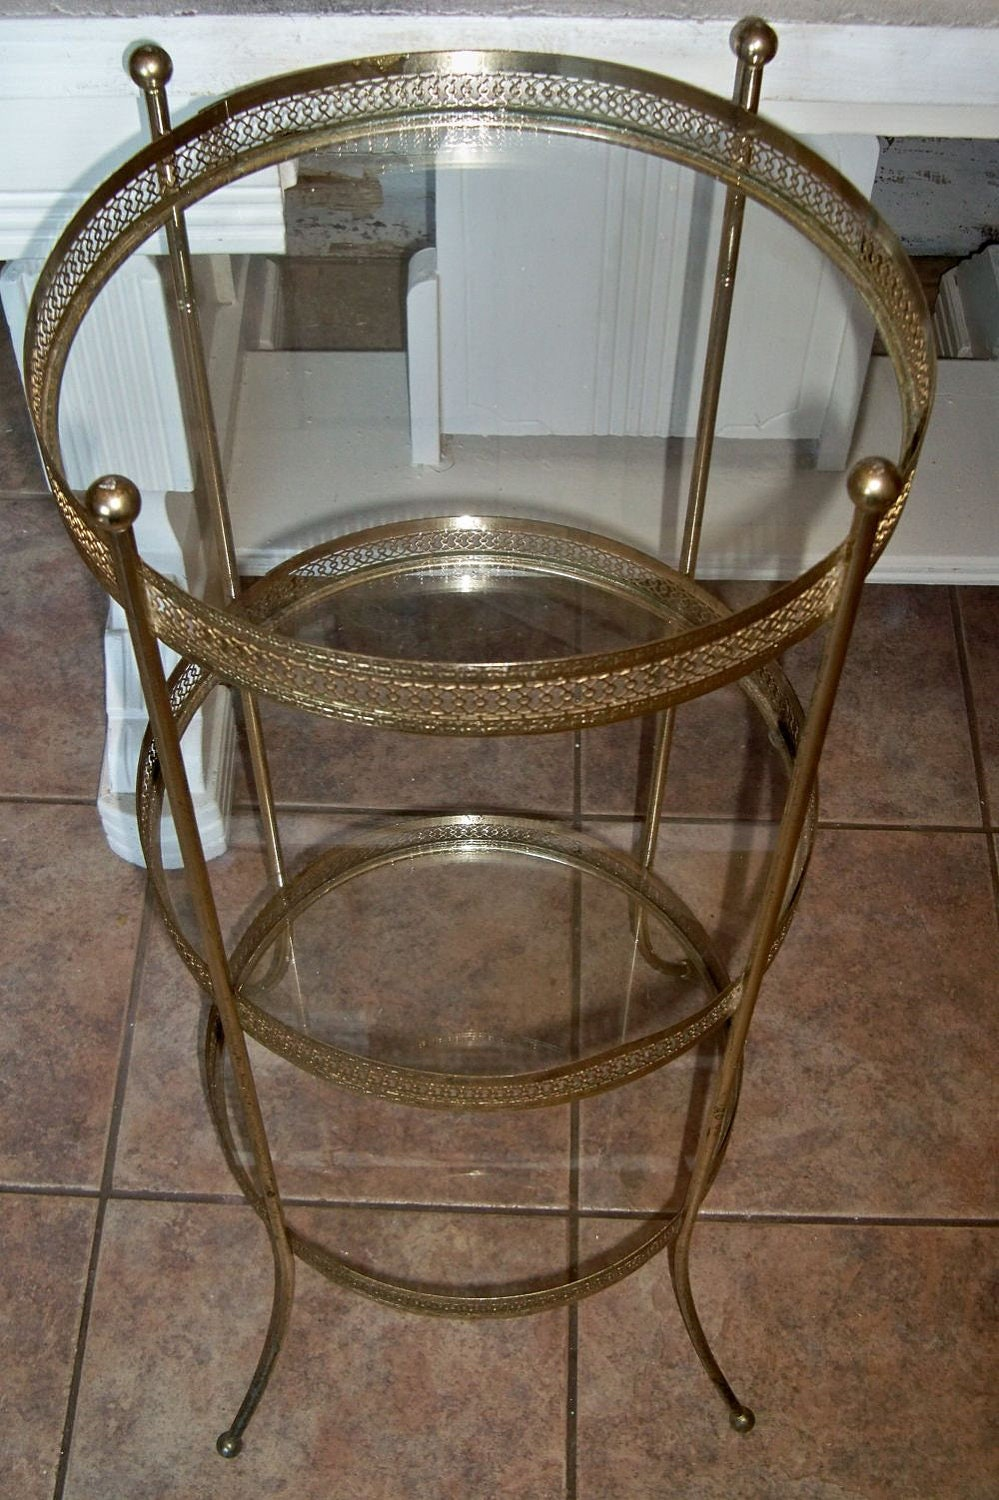 Round Table Metal Filigree And Glass 3 Tiered Accent Piece